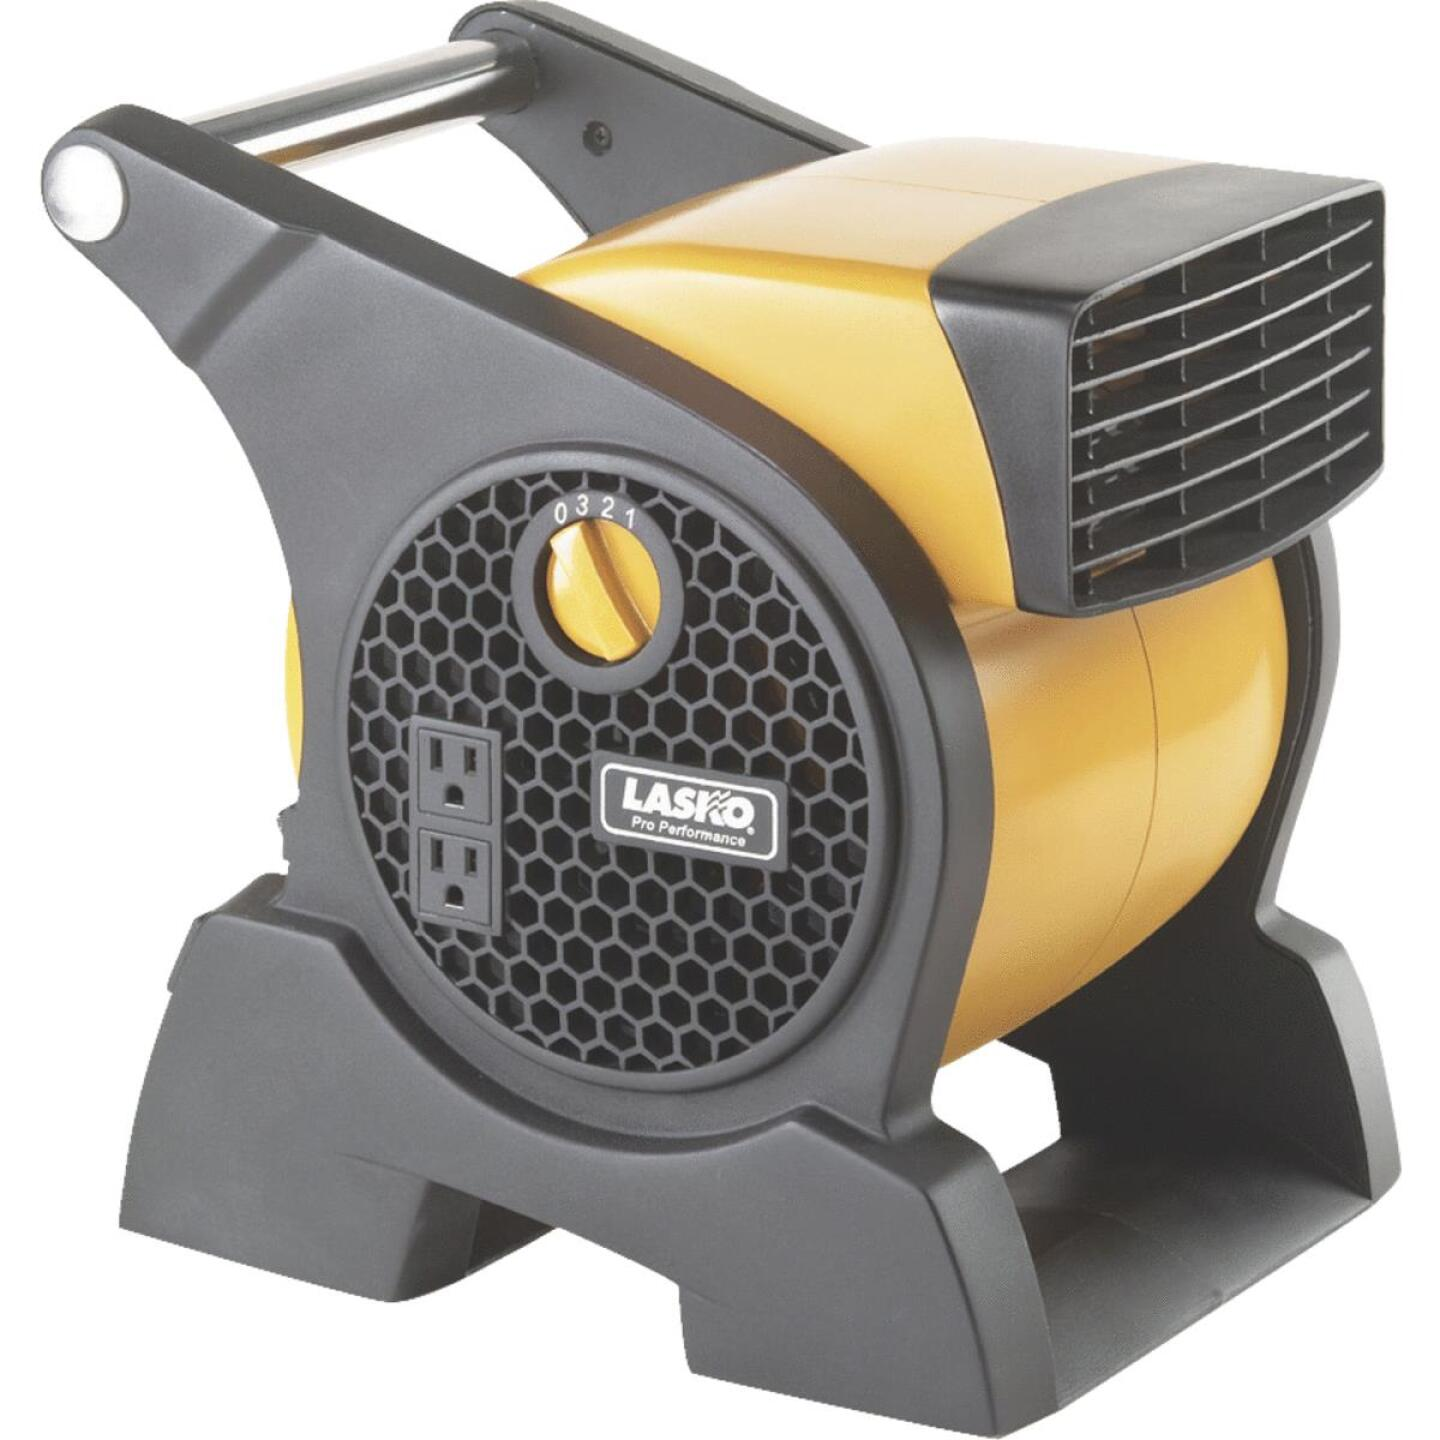 Lasko 3-Speed Pivoting 350 CFM Air Mover Blower Fan Image 1